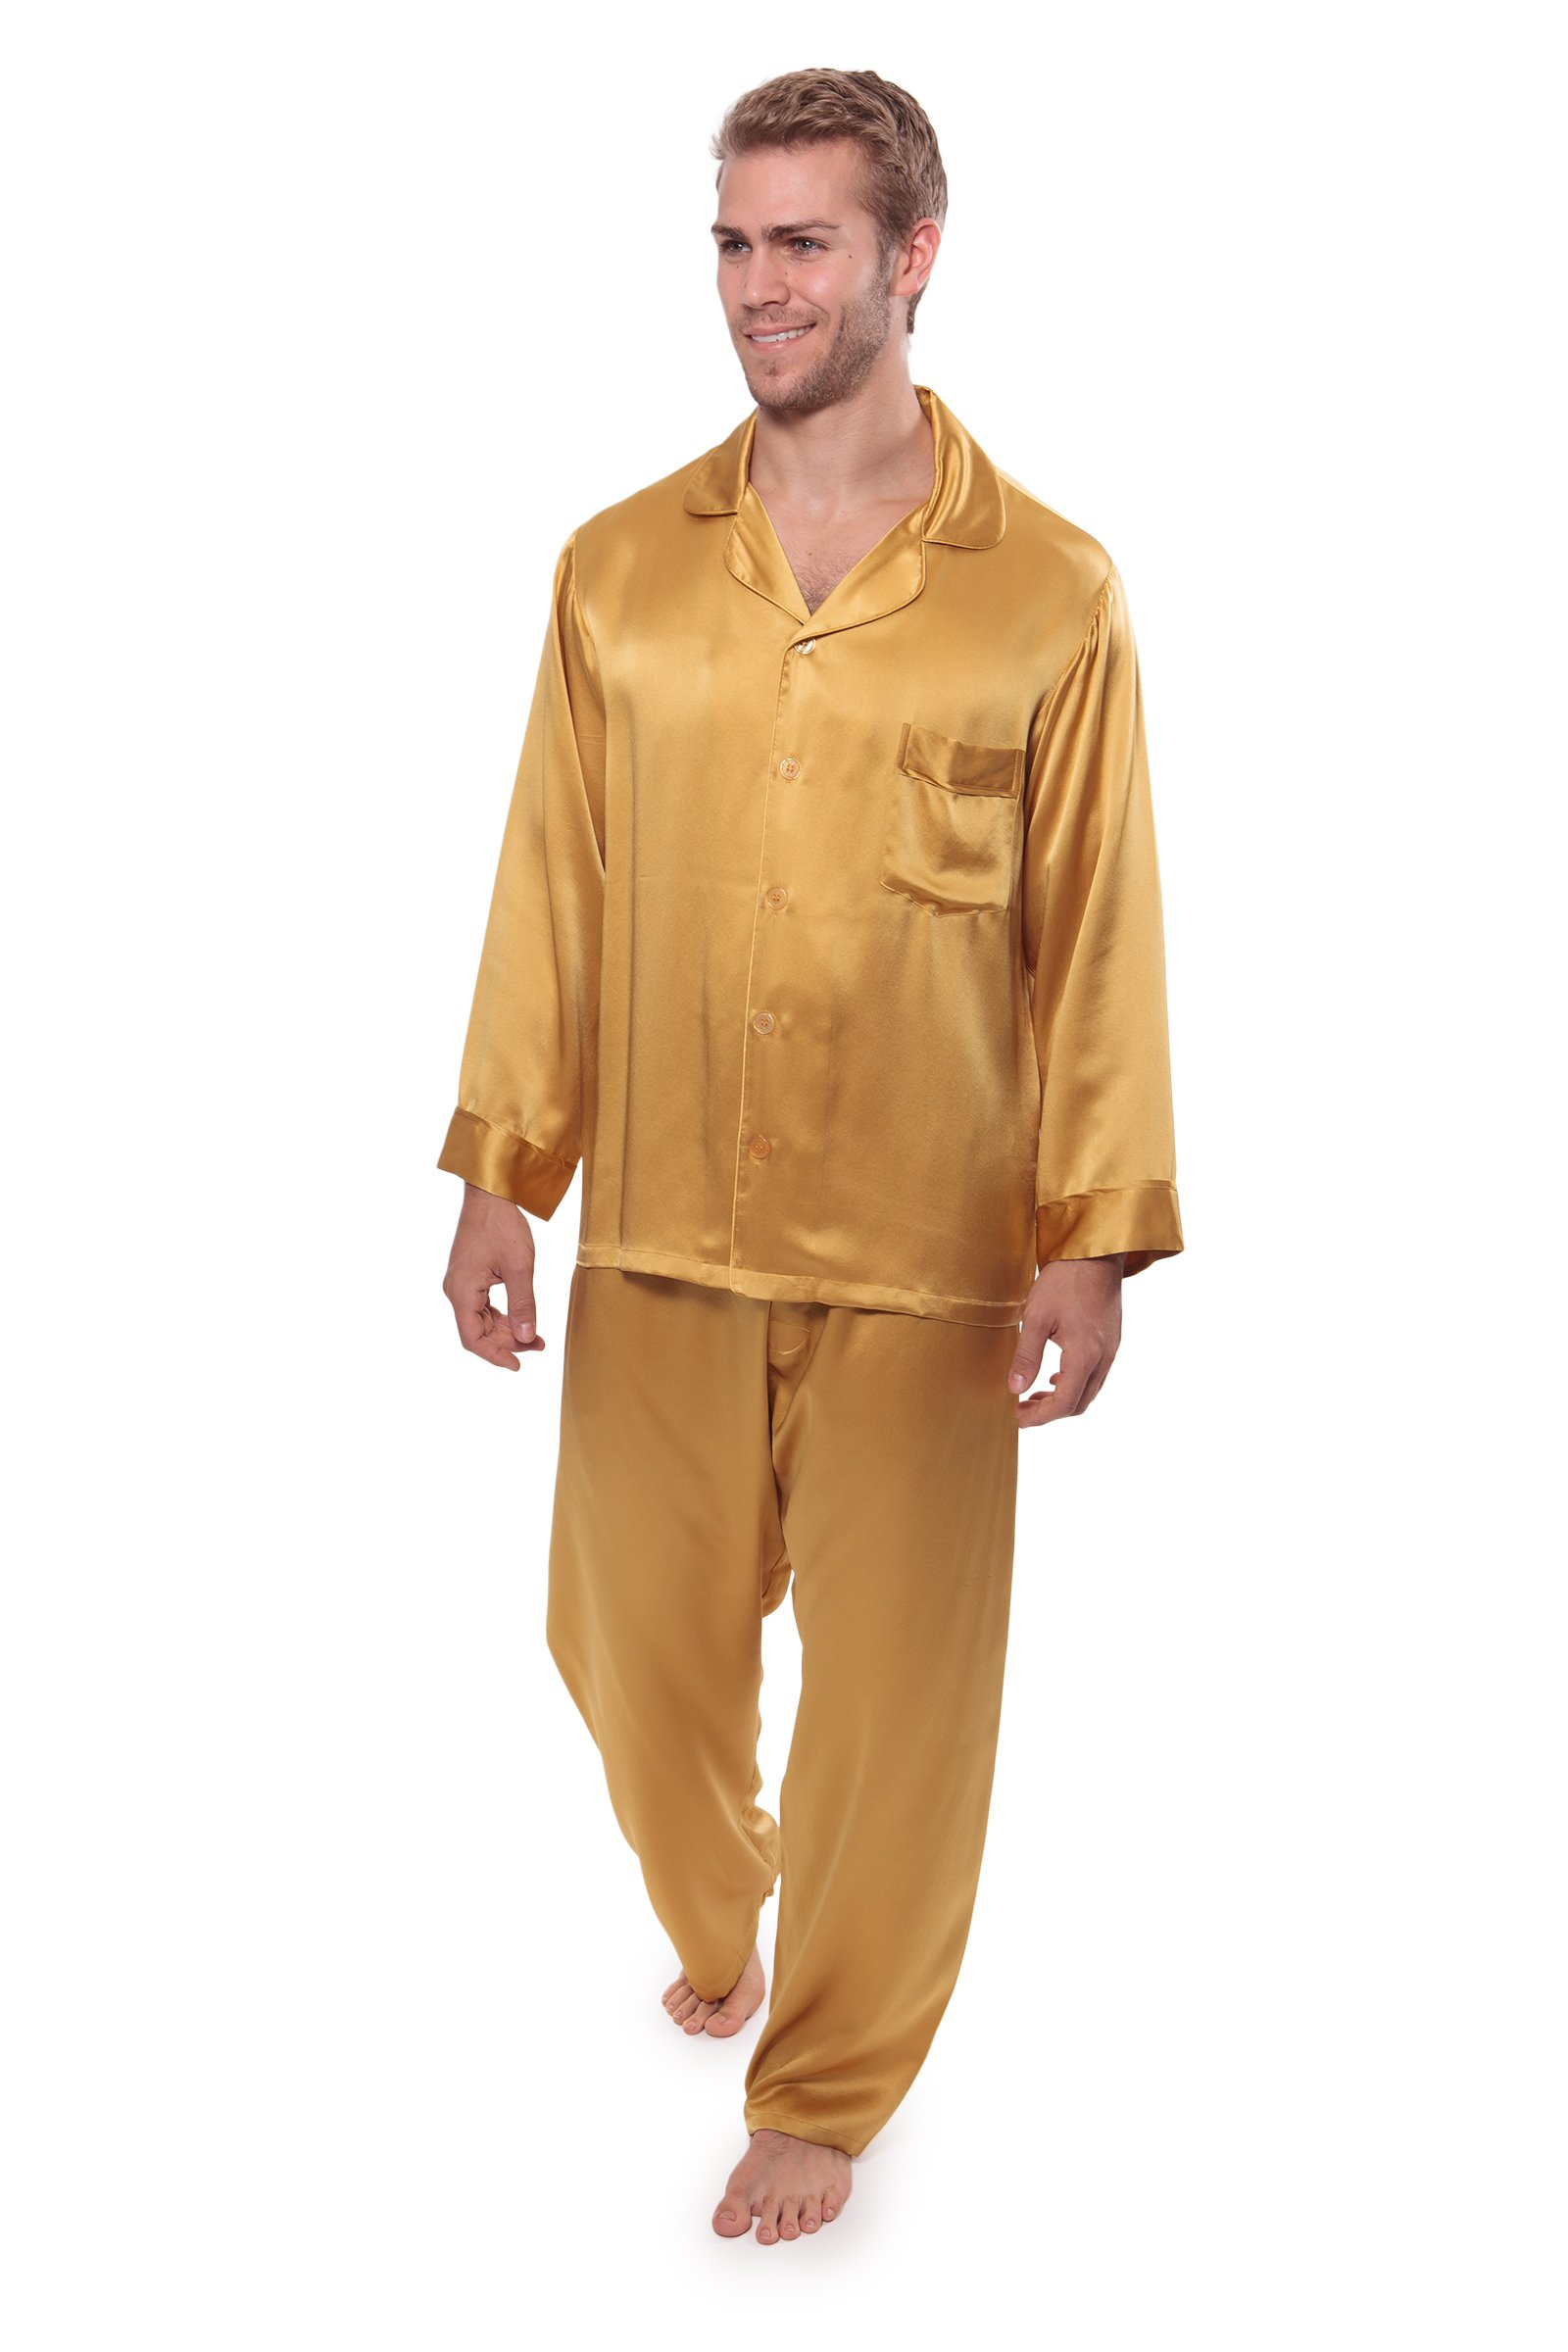 TexereSilk Men's 100% Silk Pajama Set (Milaroma, Gold, XL) Great Gifts for Men